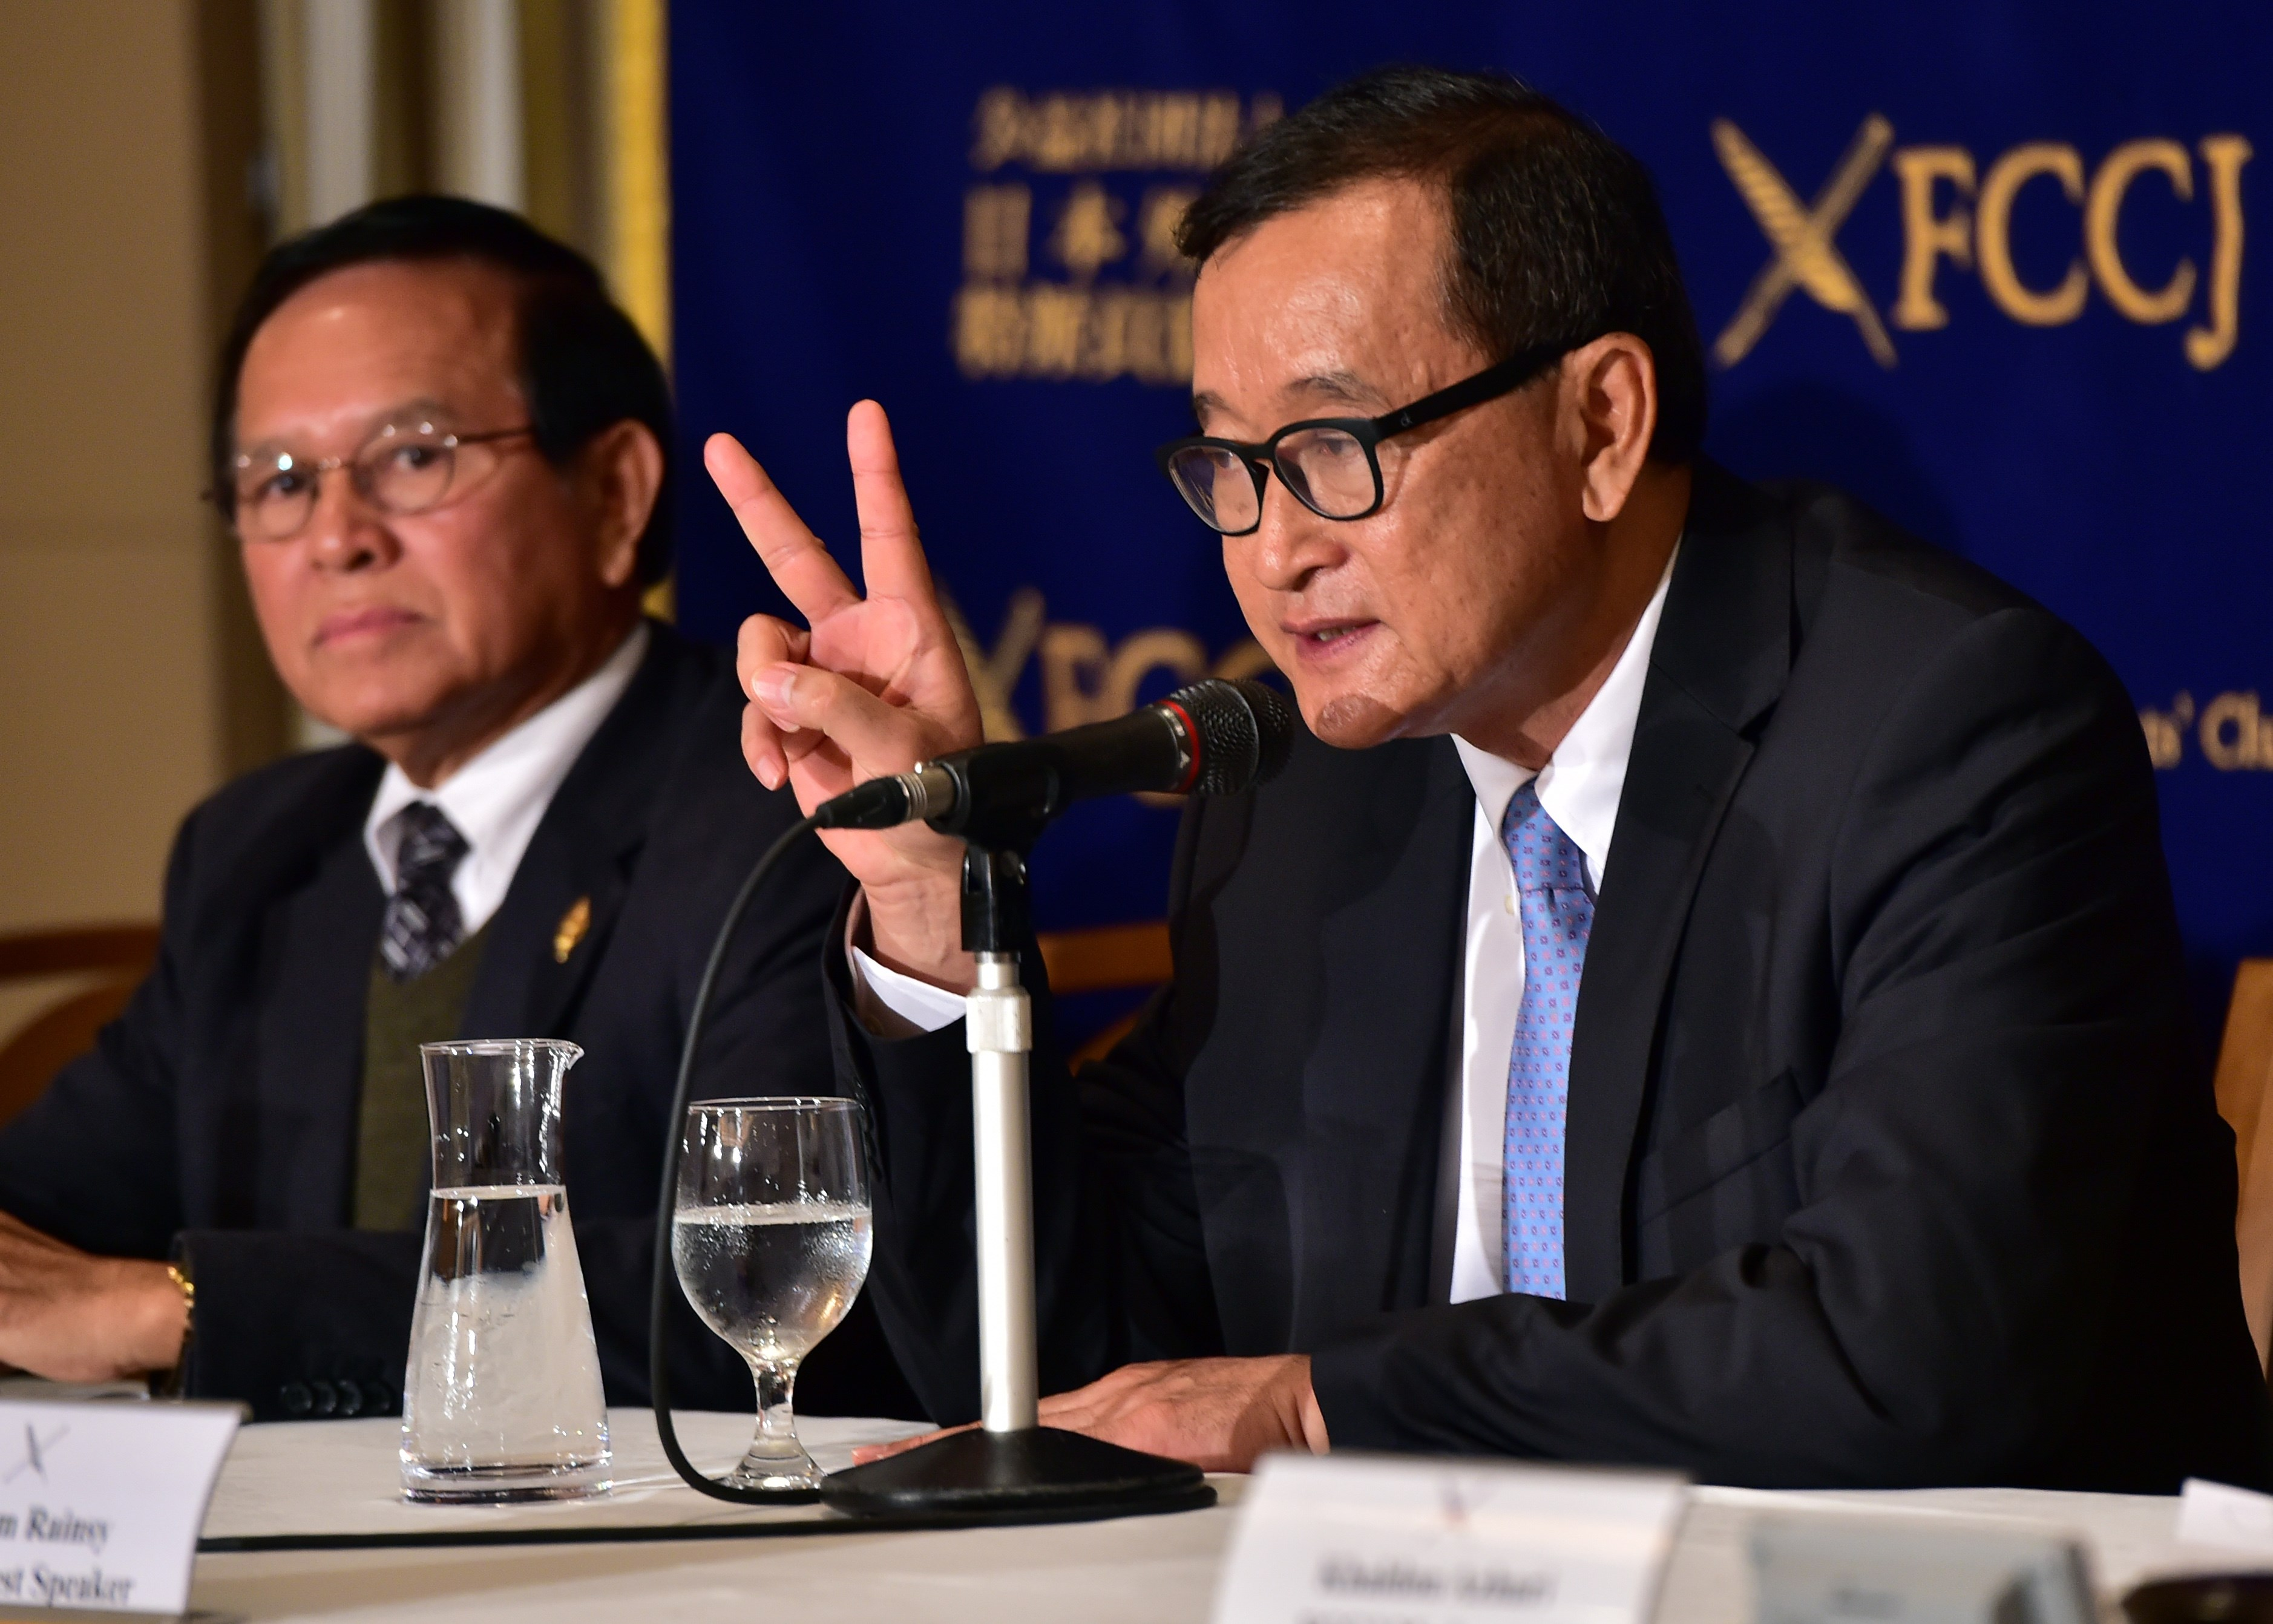 Cambodia's main opposition Cambodia National Rescue Party president Sam Rainsy, right, speaks to the press as deputy president Kem Sokha. left, looks on in Tokyo on Nov. 10, 2015